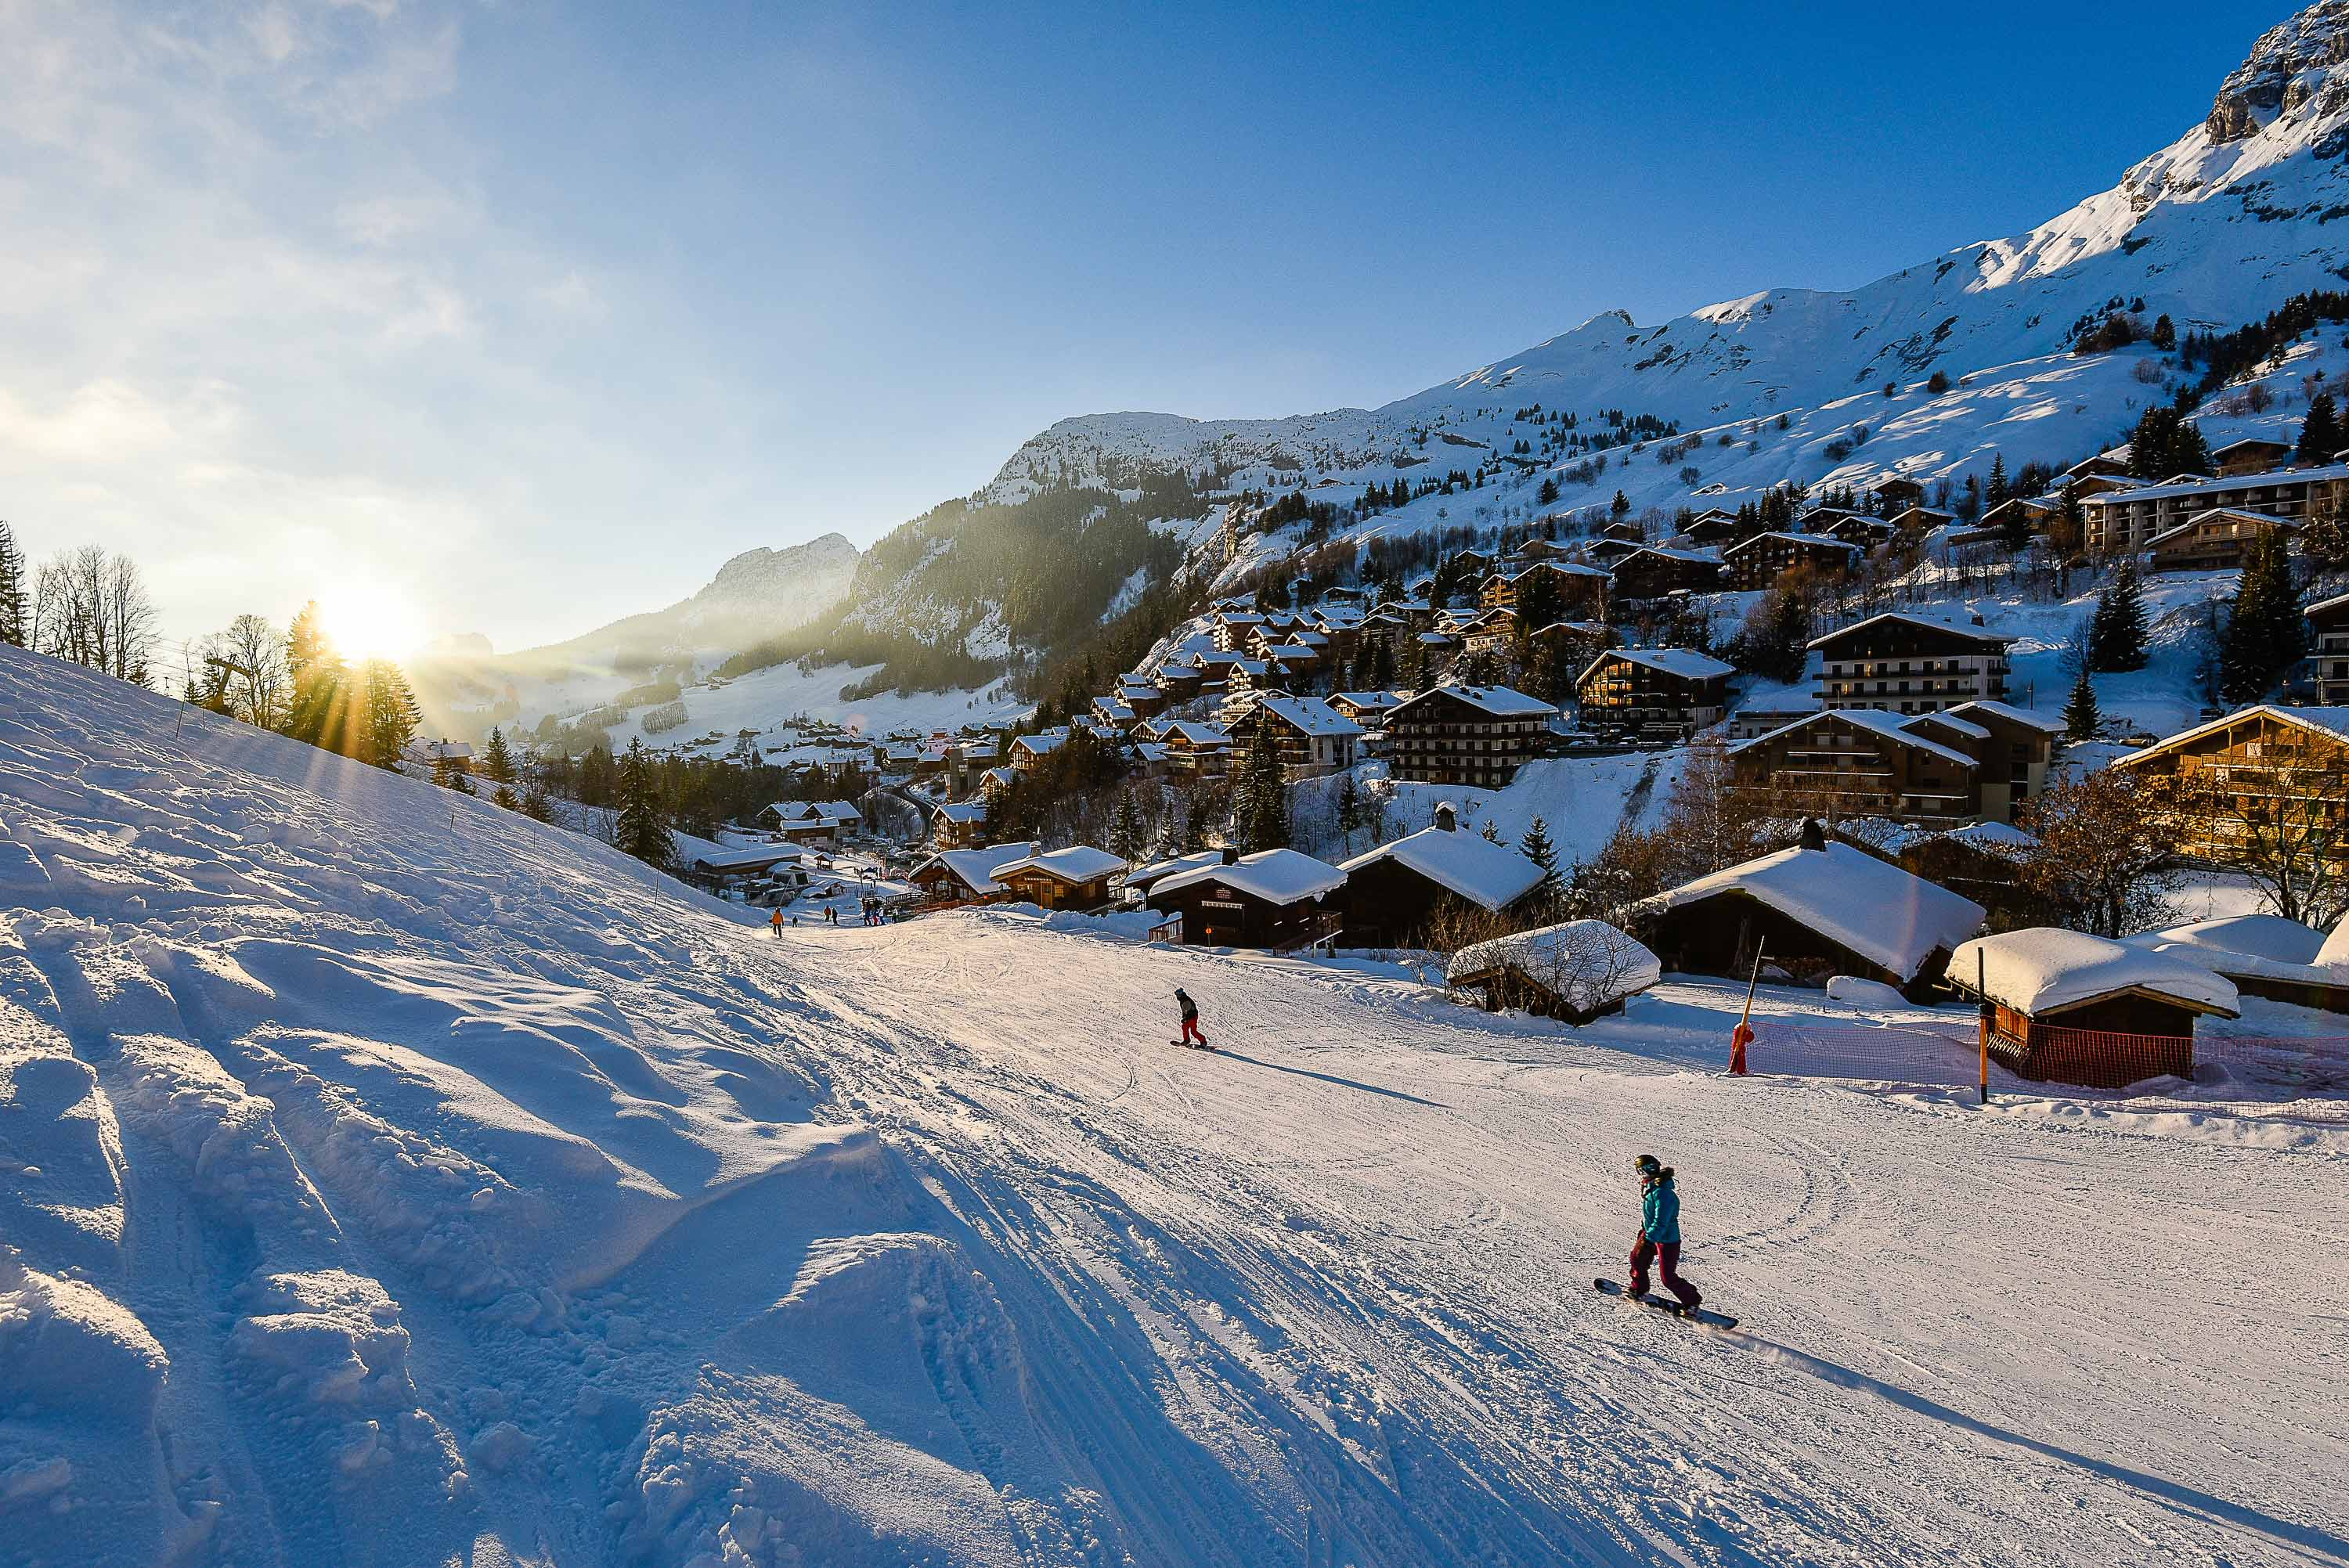 Le Grand Bornand ski resort David Machet